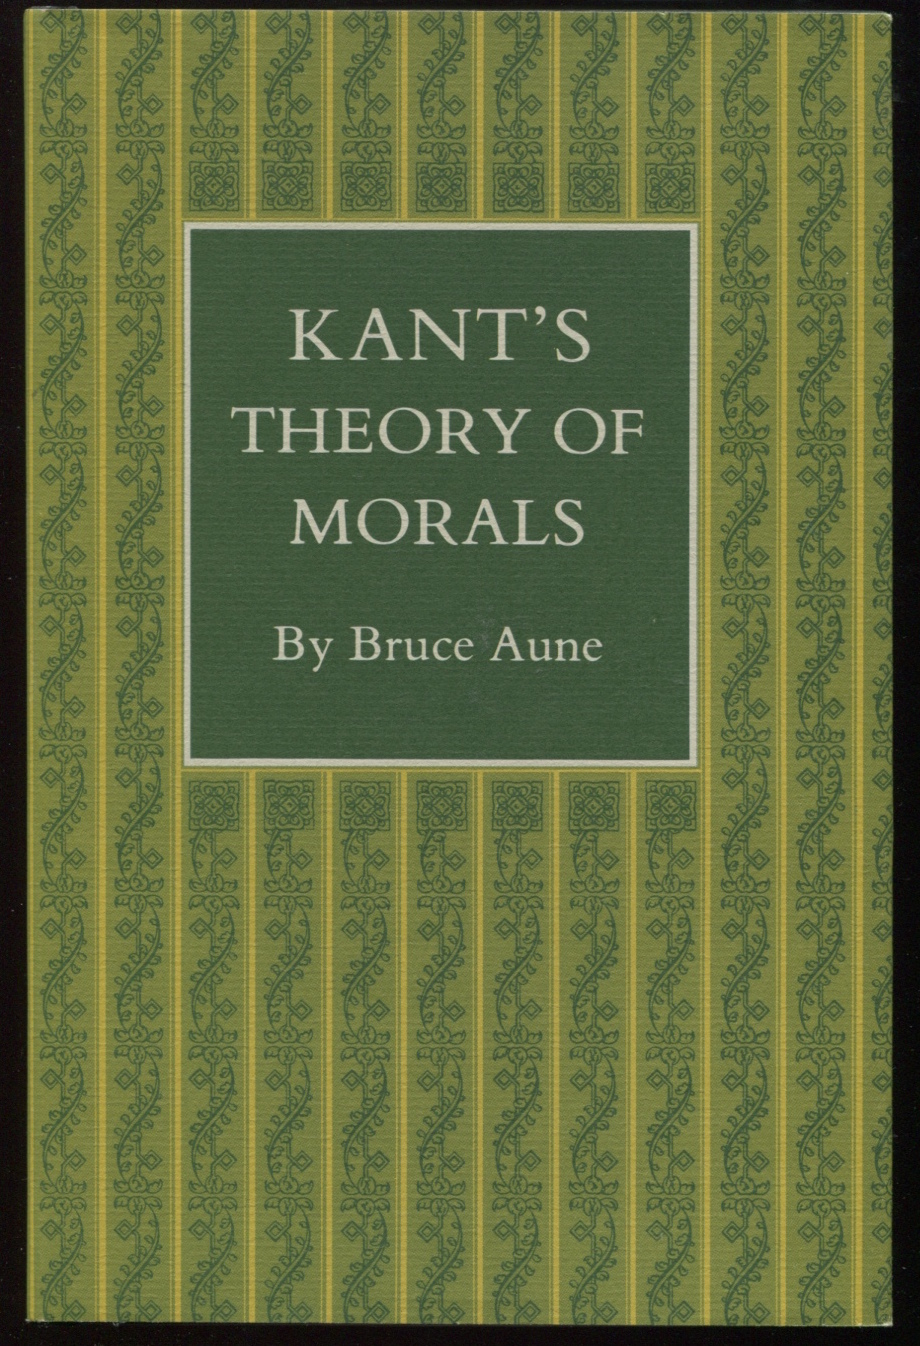 Kant's Theory of Morals.